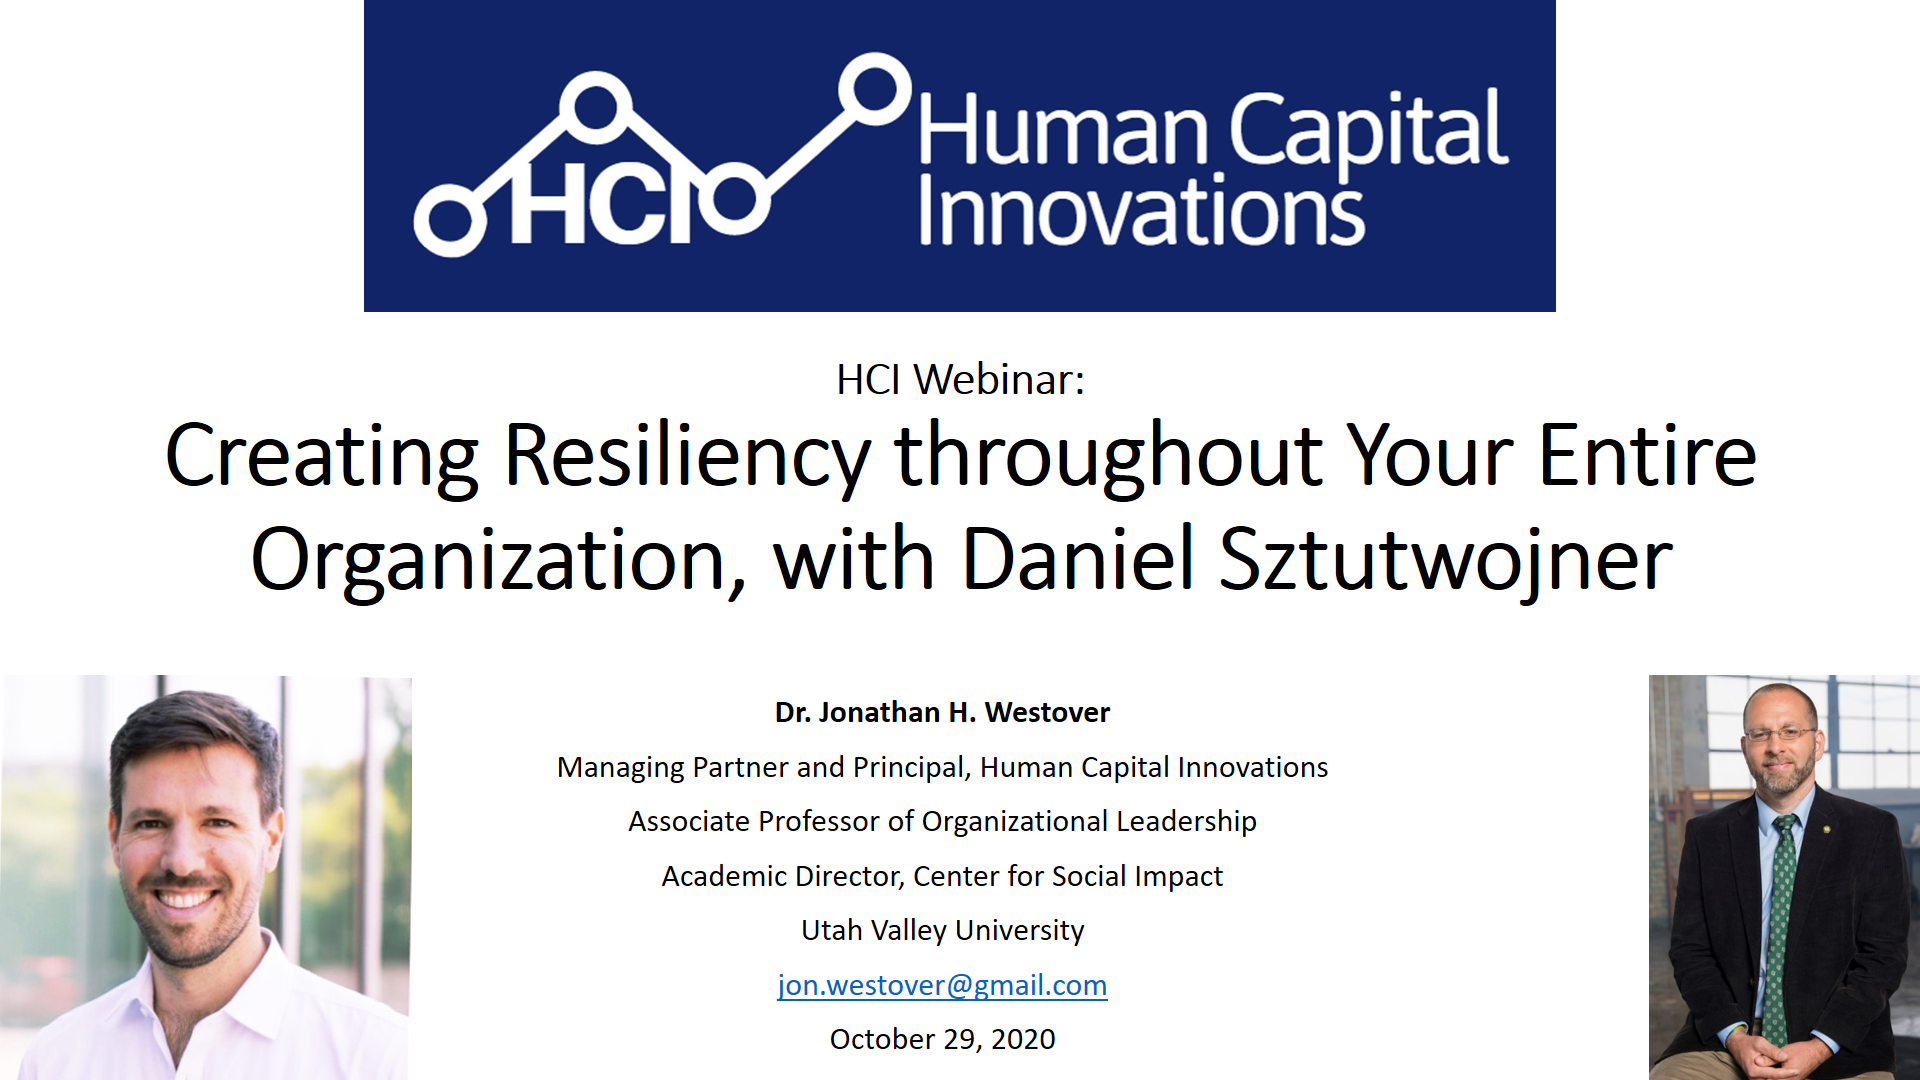 Creating Resiliency throughout Your Entire Organization